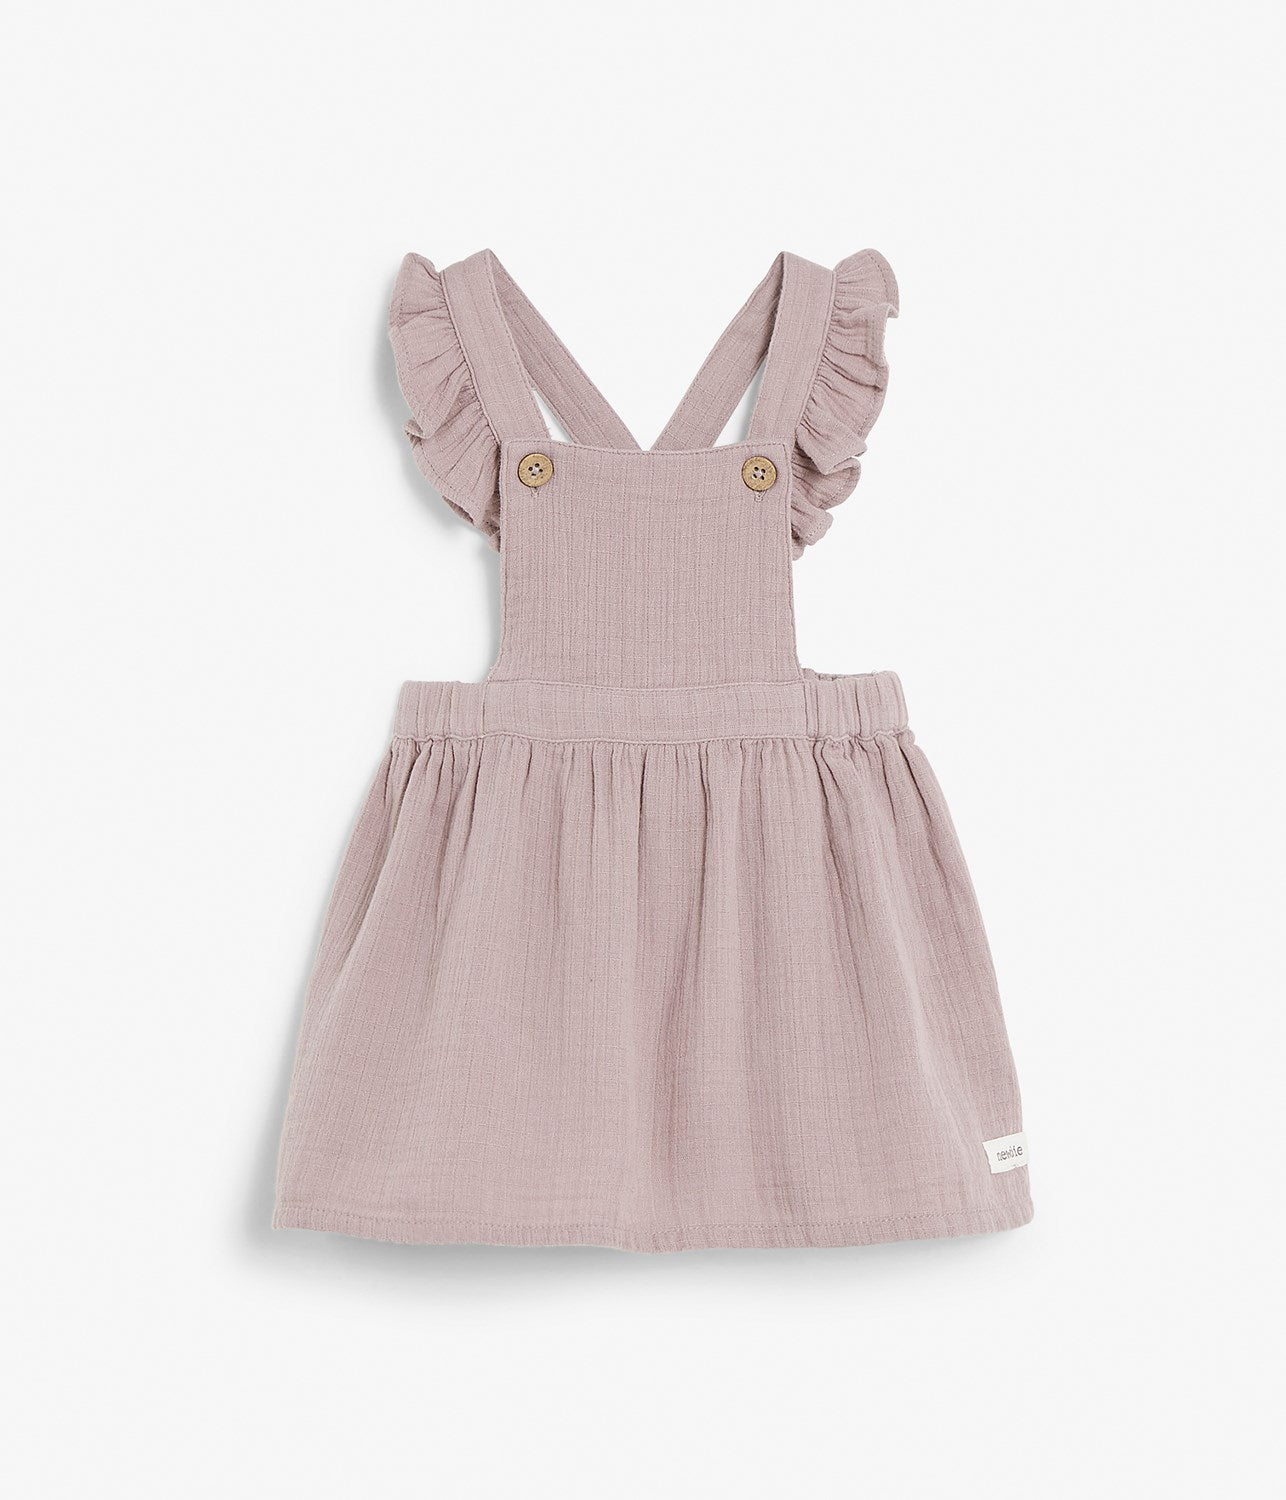 Baby purple dungarees dress